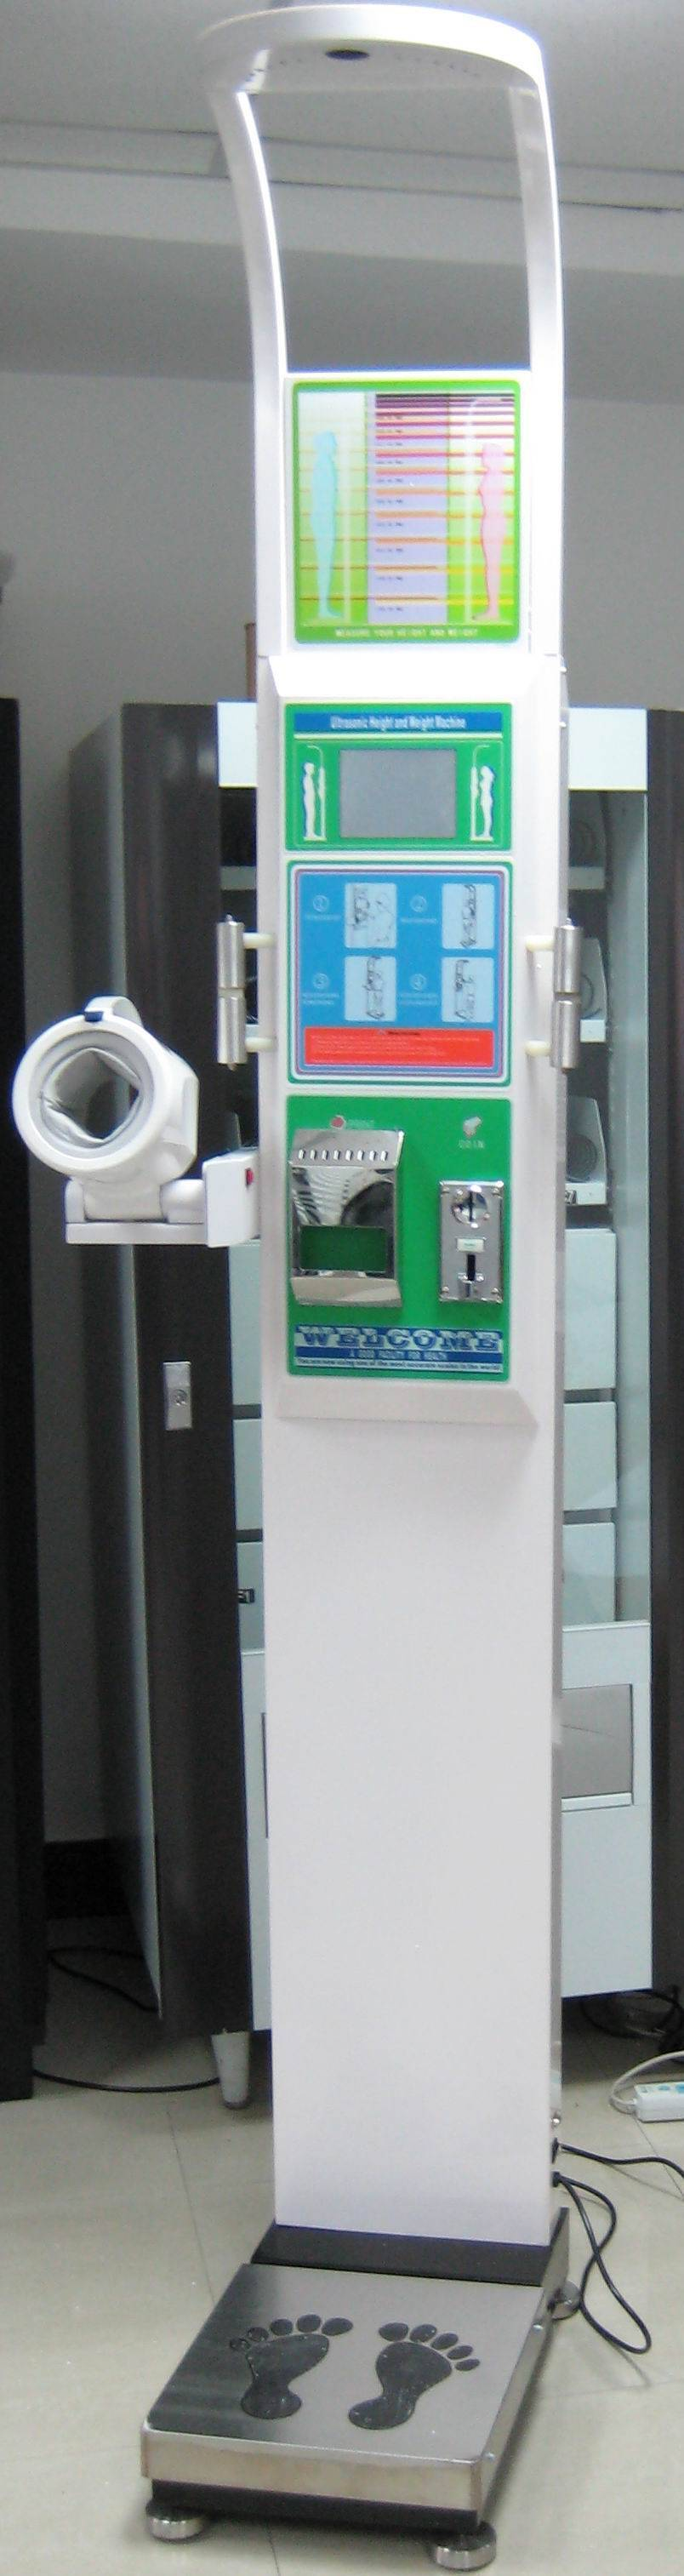 Coin-Operated Body Scale CVE-BS15A